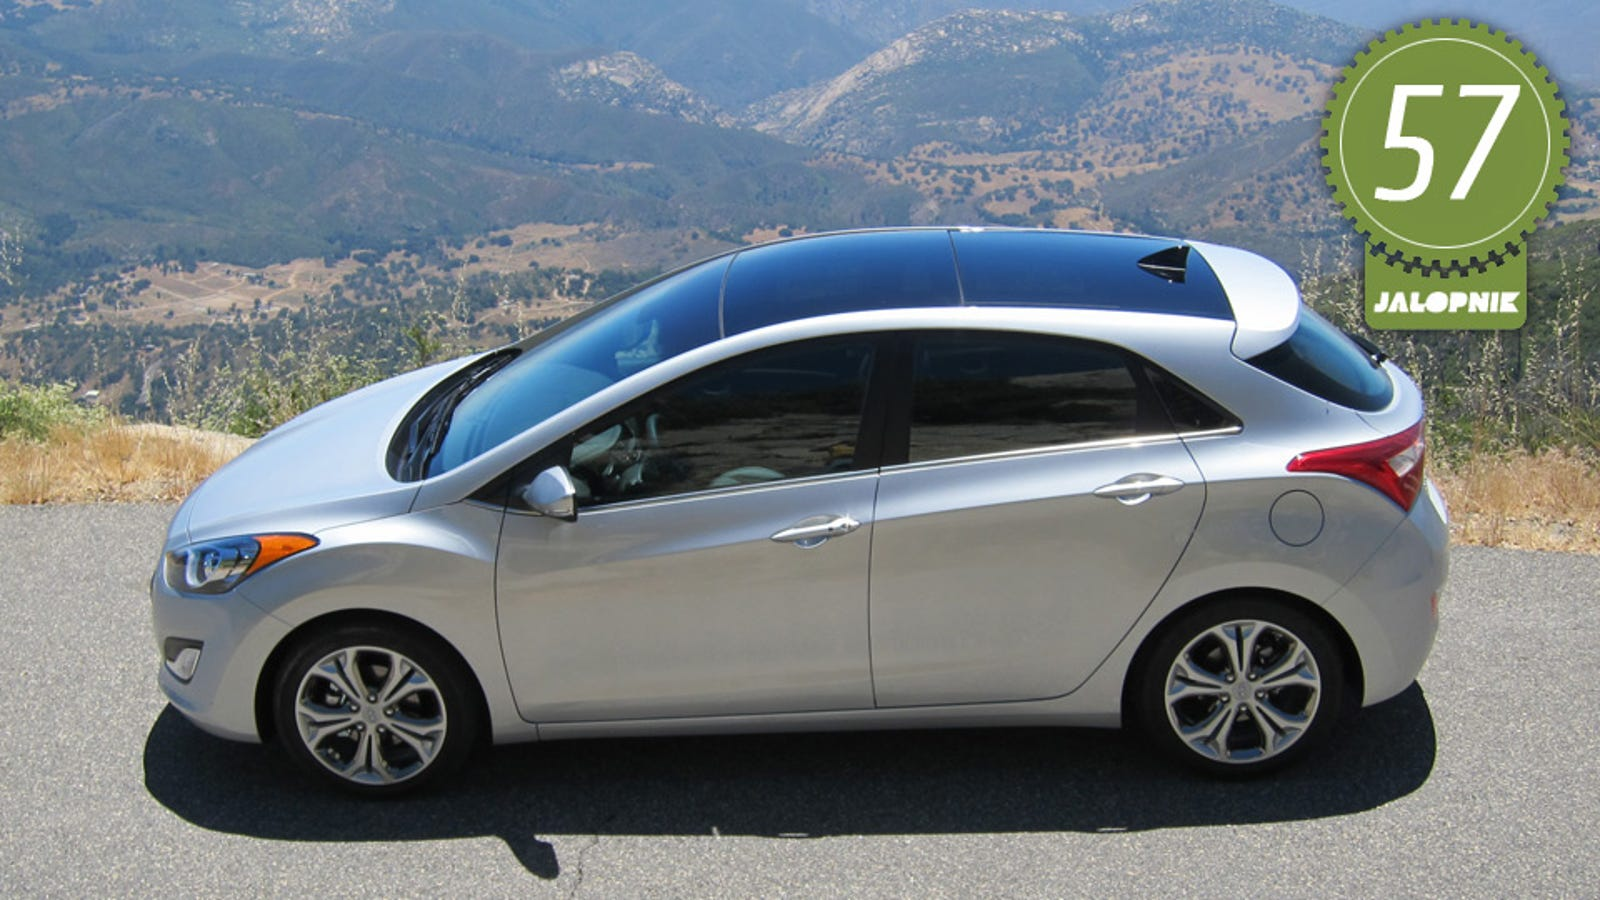 2013 Hyundai Elantra Gt The Jalopnik Review